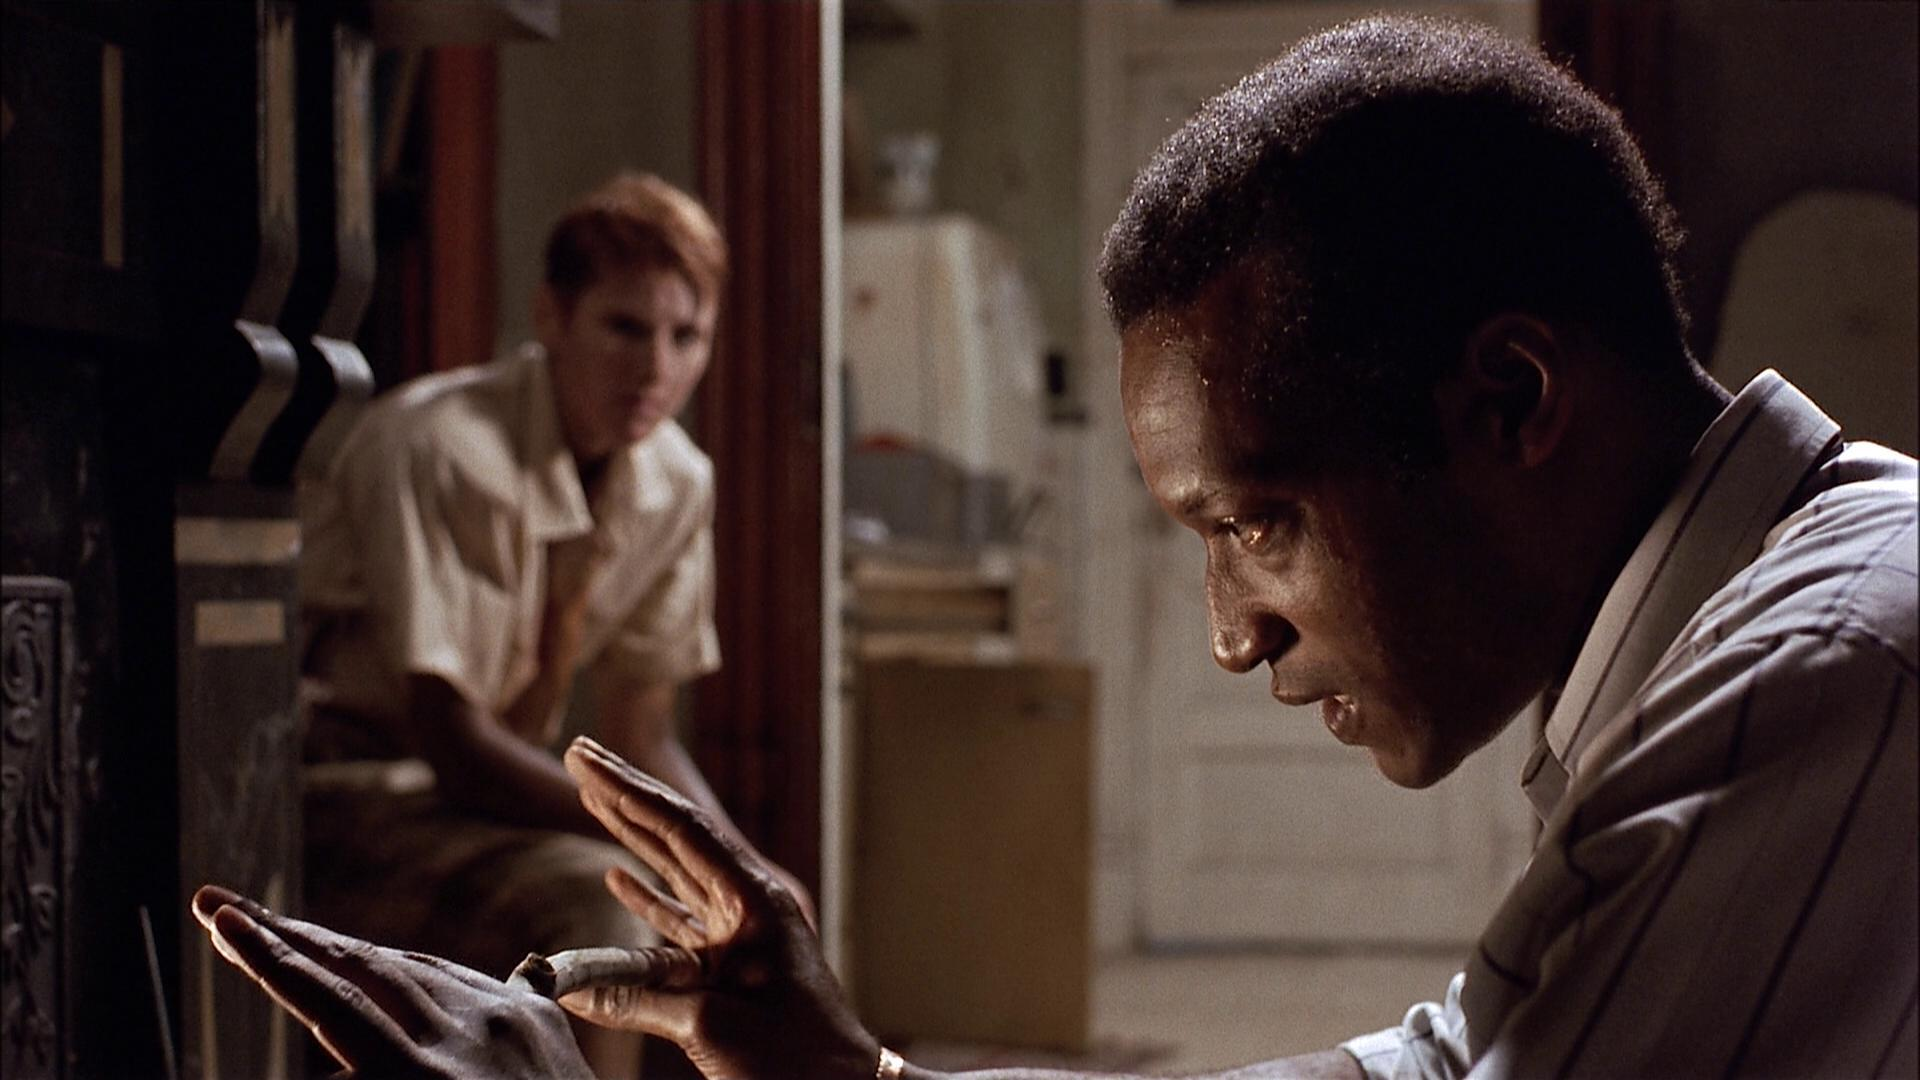 Barbara (Patricia Tallman) and Ben (Tony Todd) in Night of the Living Dead (1990)